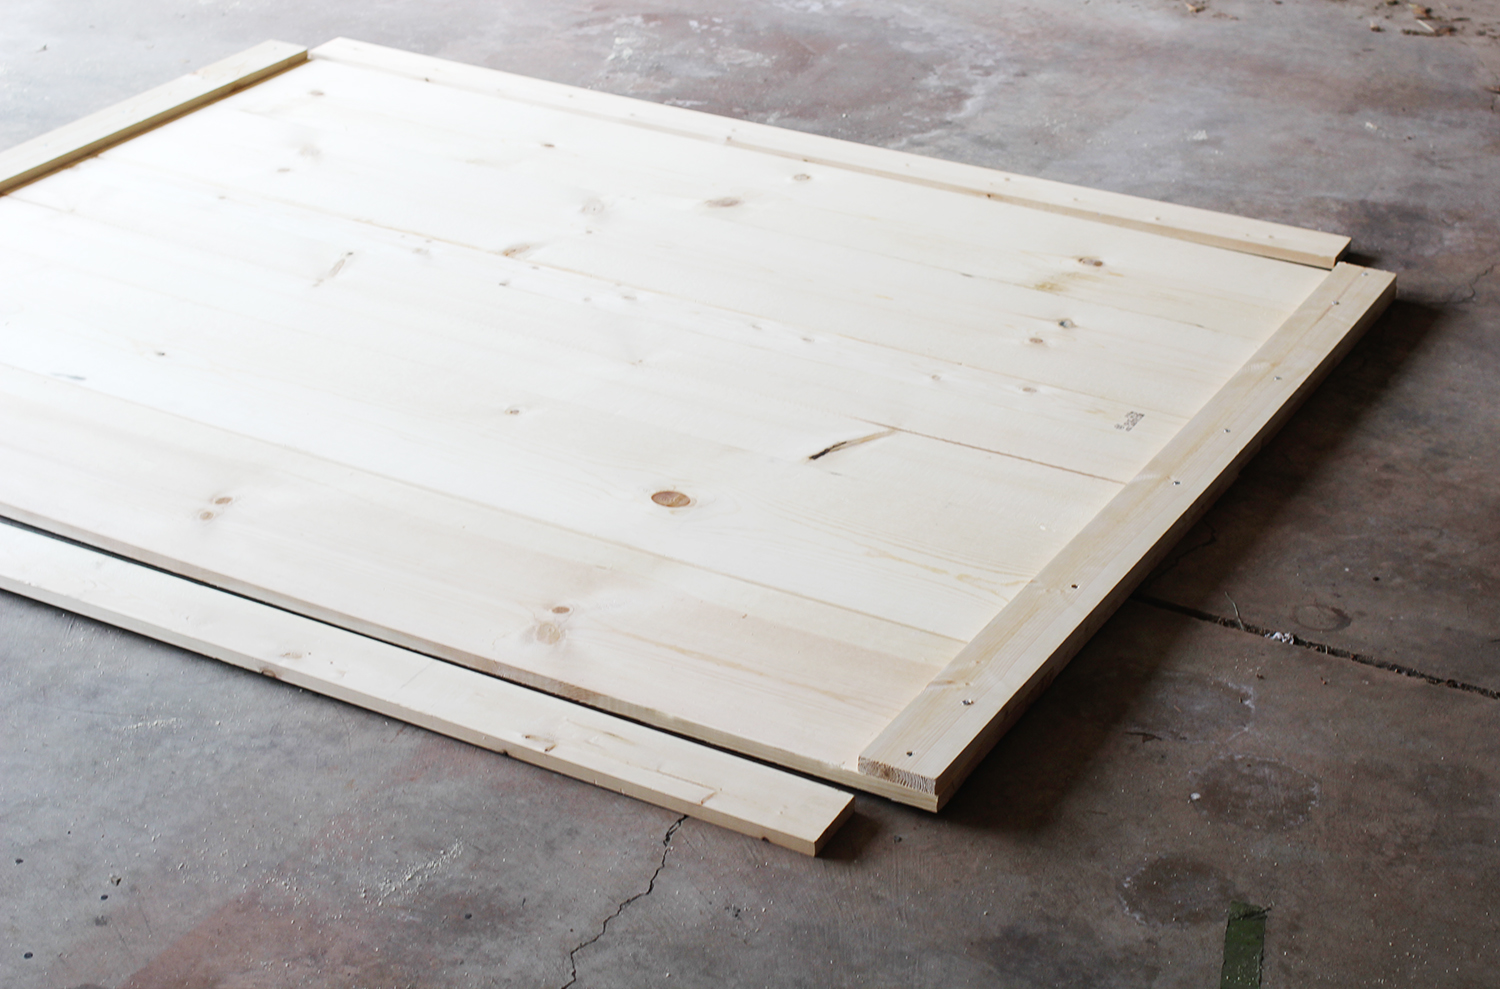 How to build a minimal bedframe